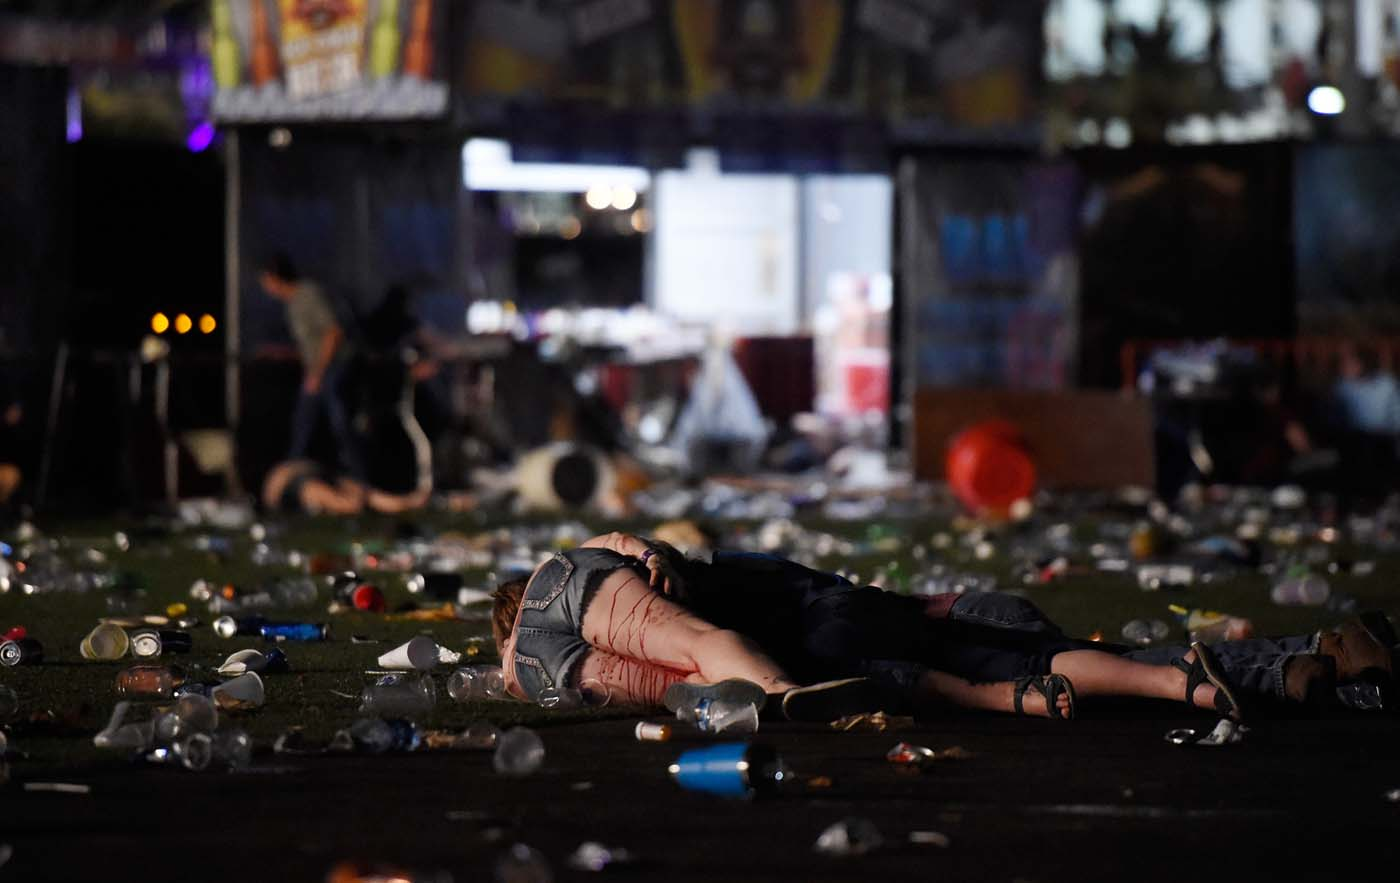 LAS VEGAS, NV - OCTOBER 01: (EDITORS NOTE: Image contains graphic content.) A person lies on the ground covered with blood at the Route 91 Harvest country music festival after apparent gun fire was heard on October 1, 2017 in Las Vegas, Nevada. There are reports of an active shooter around the Mandalay Bay Resort and Casino. David Becker/Getty Images/AFP